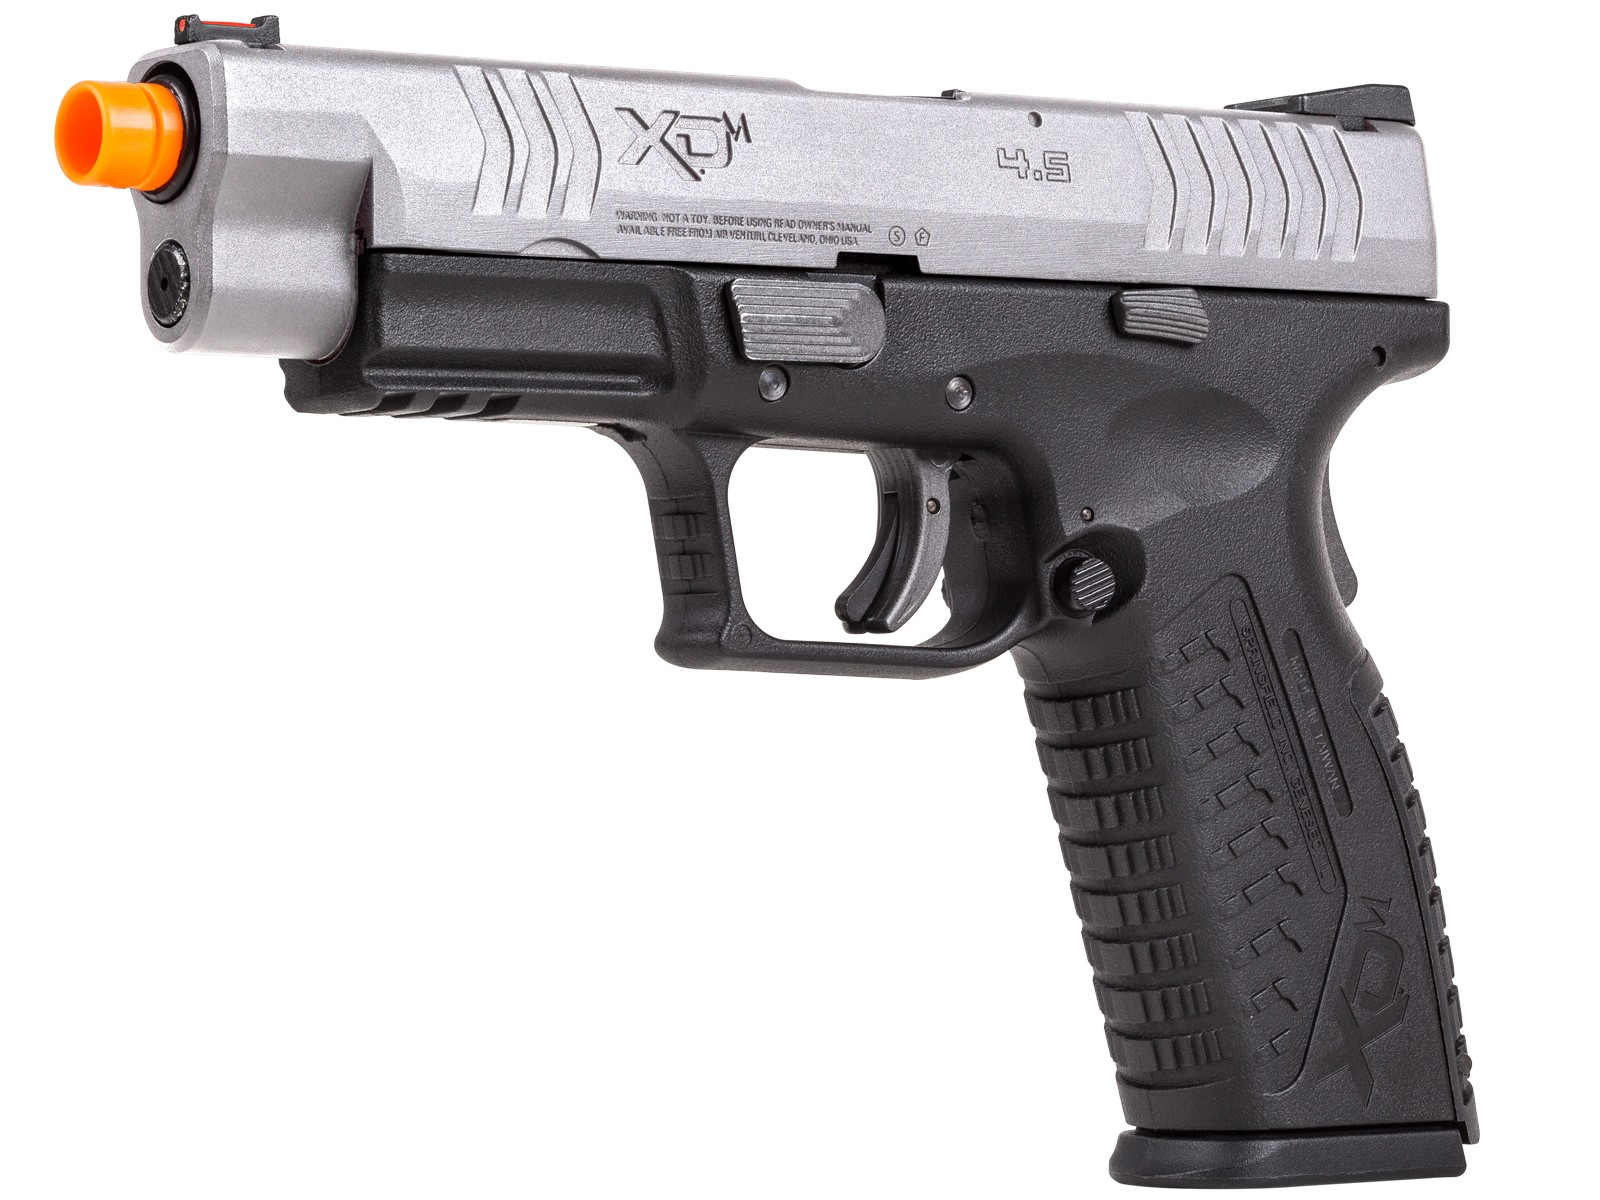 Springfield_Armory_XDM_45_GBB_Airsoft_Pistol_BiTone_6mm